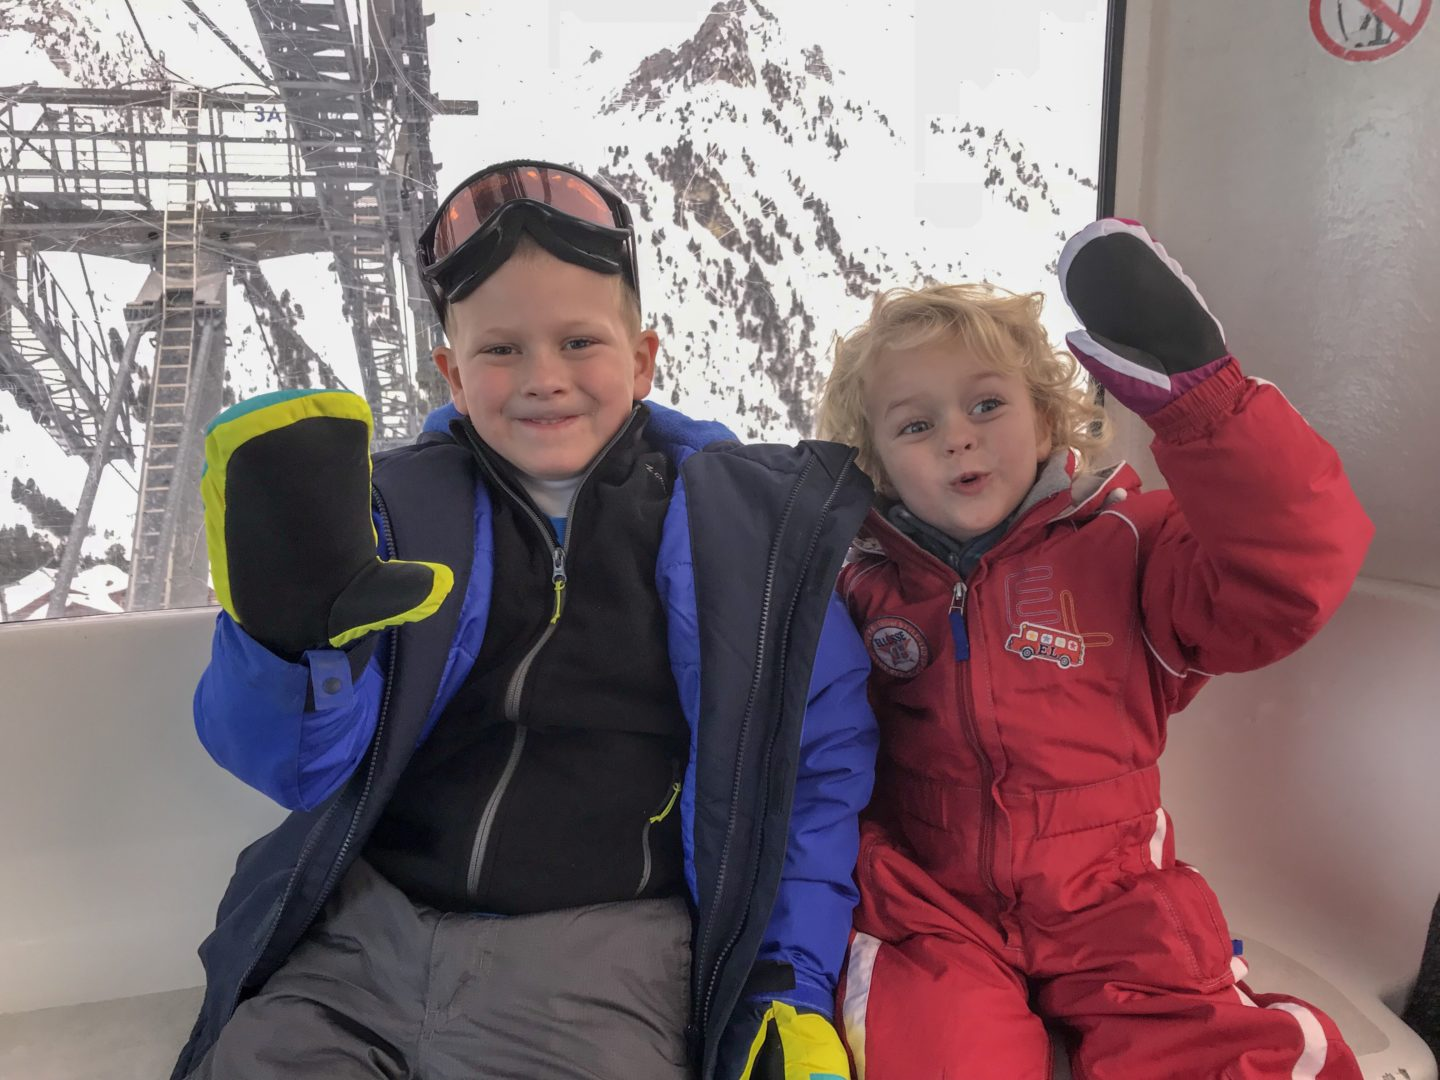 Lessons learned from travelling with kids - Thing 1 and Thing 2 in their ski gear